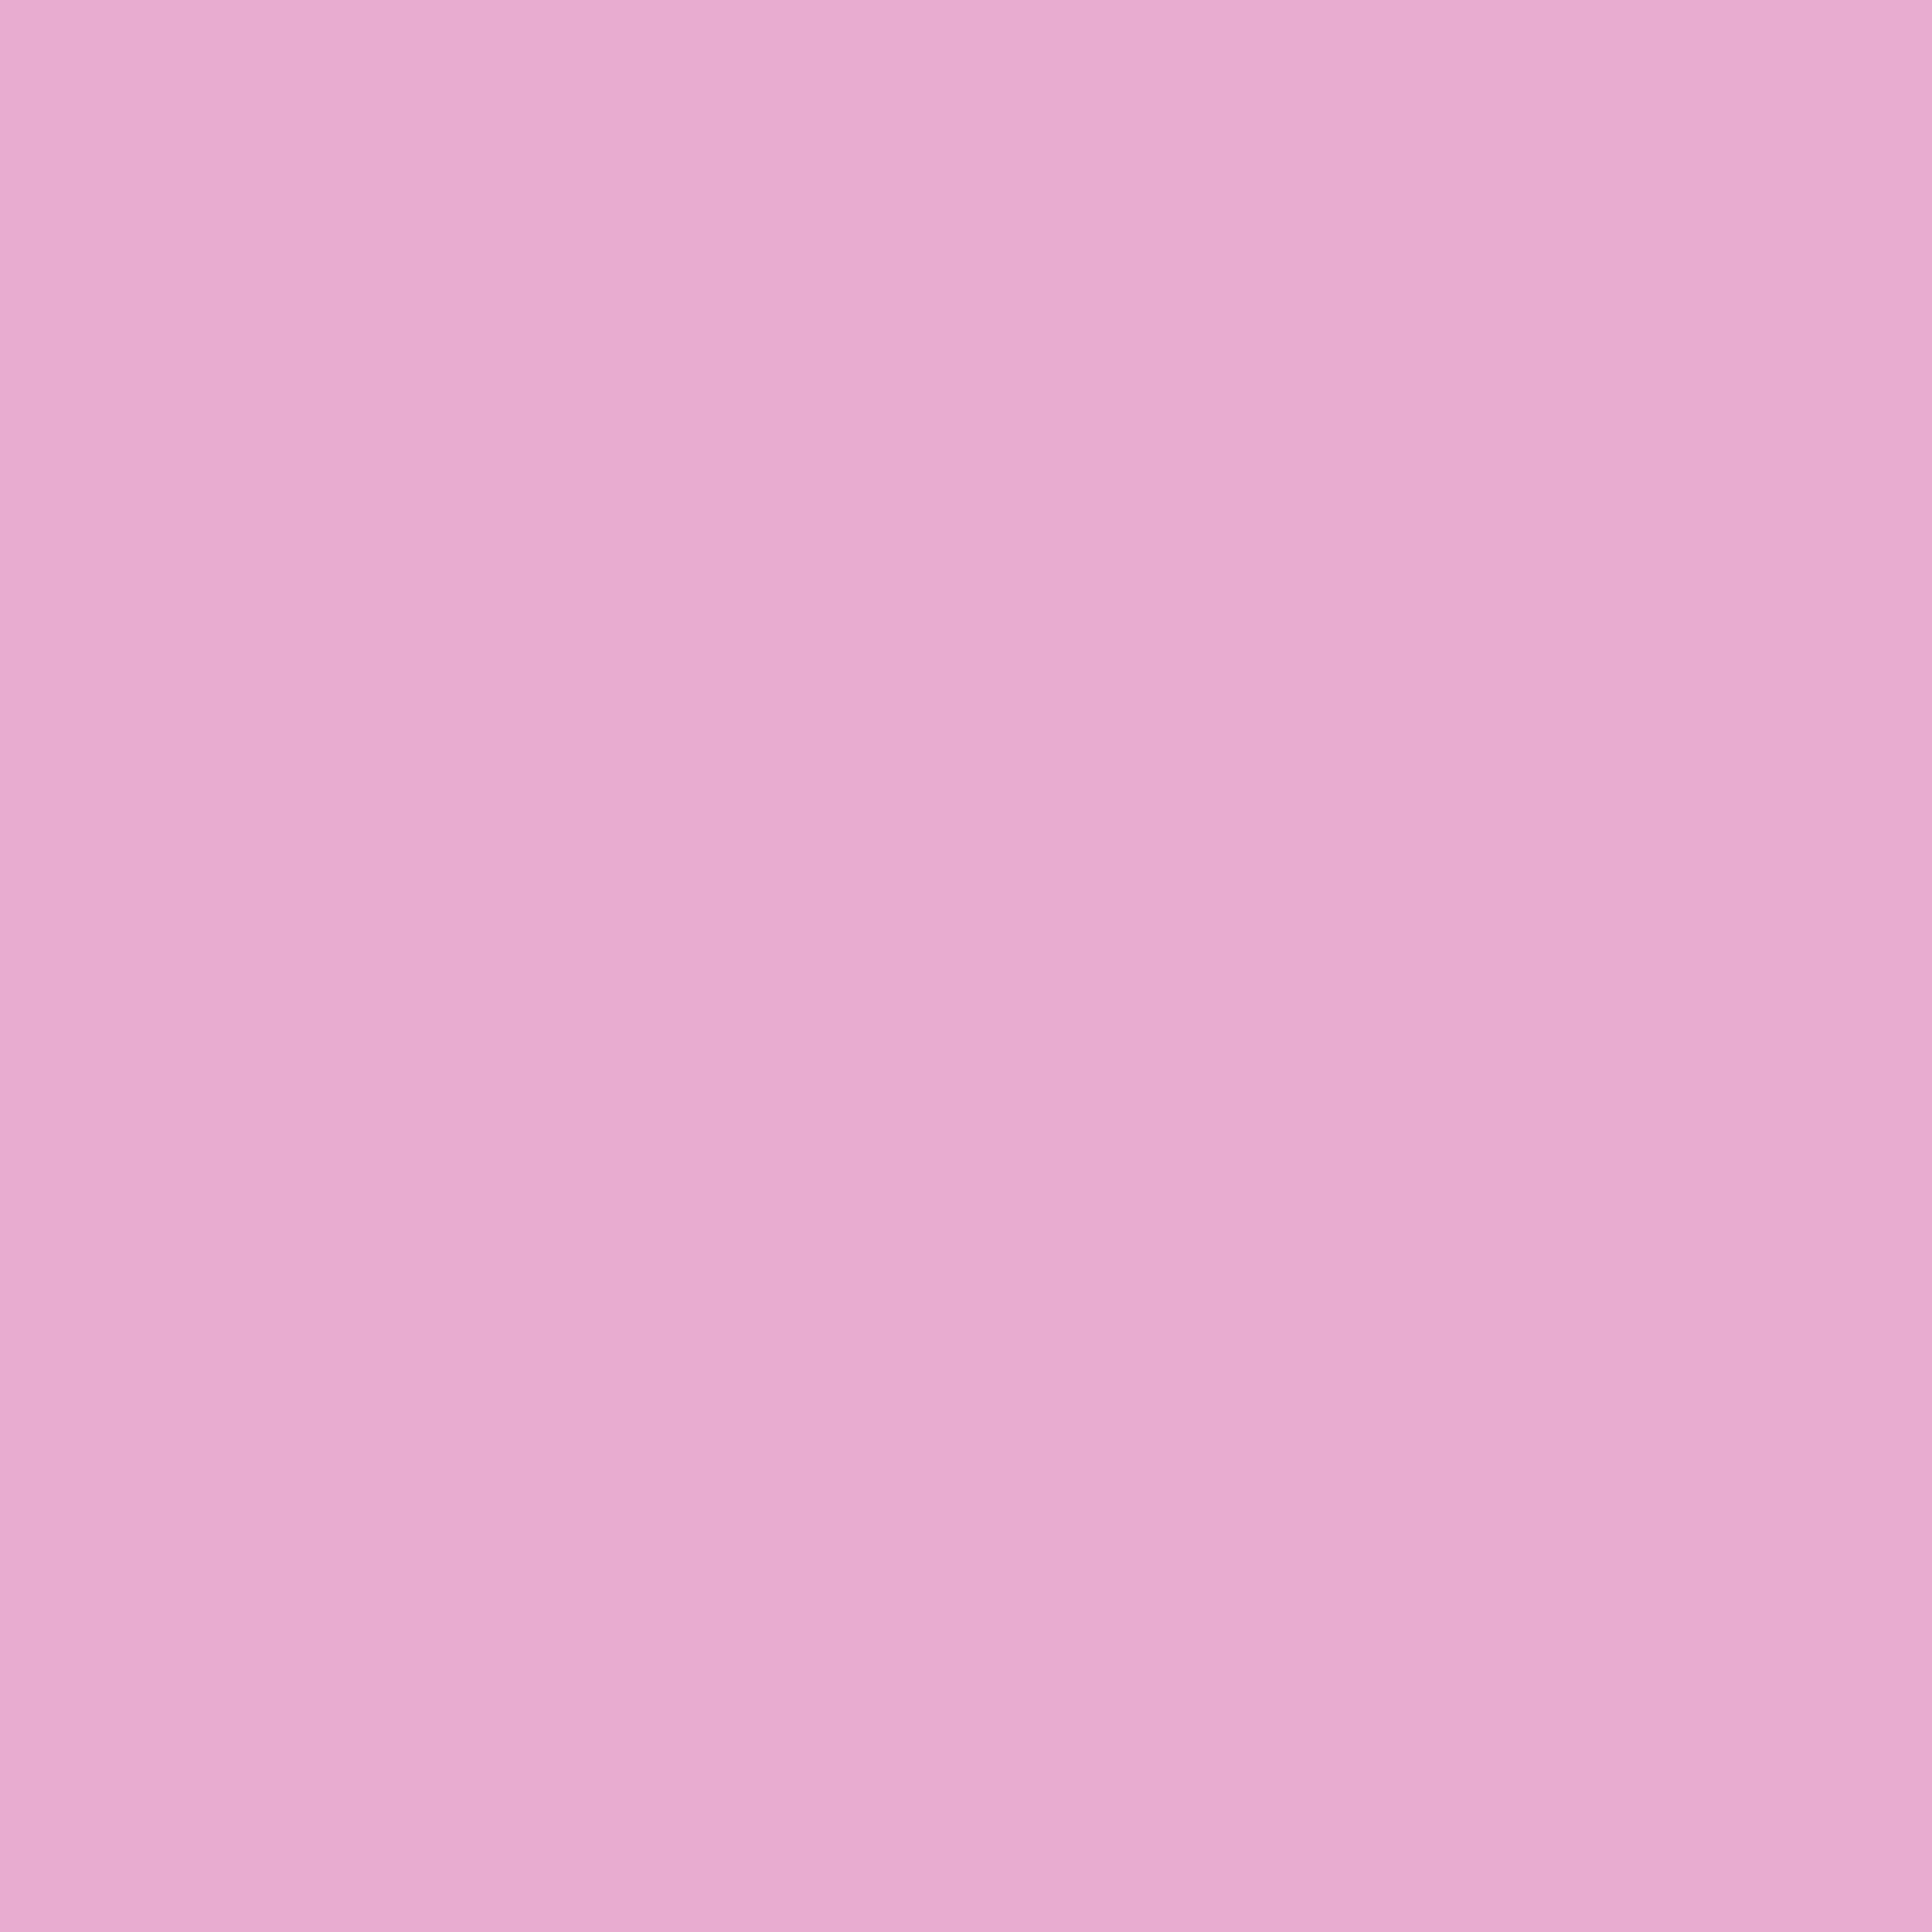 2048x2048 Pink Pearl Solid Color Background